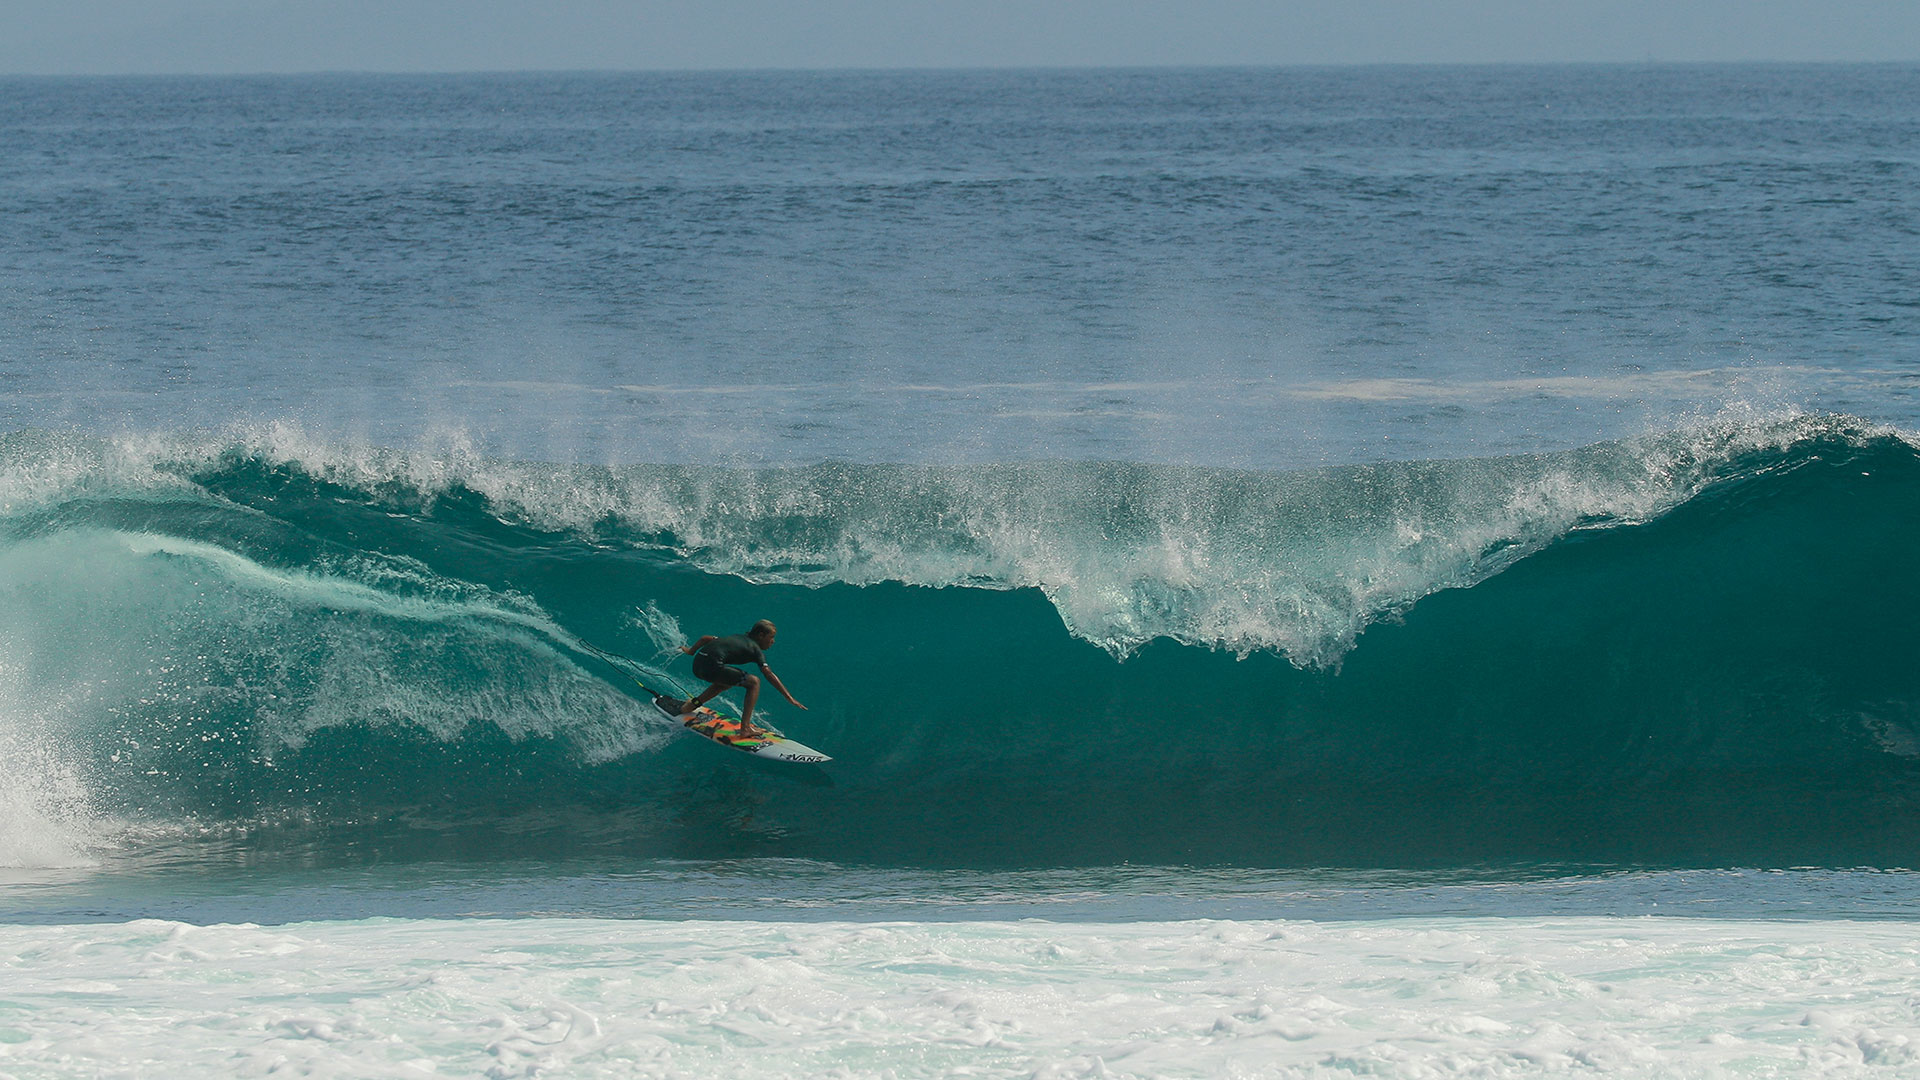 Jett Schilling Photo: Courtesy of SURFER Magazine